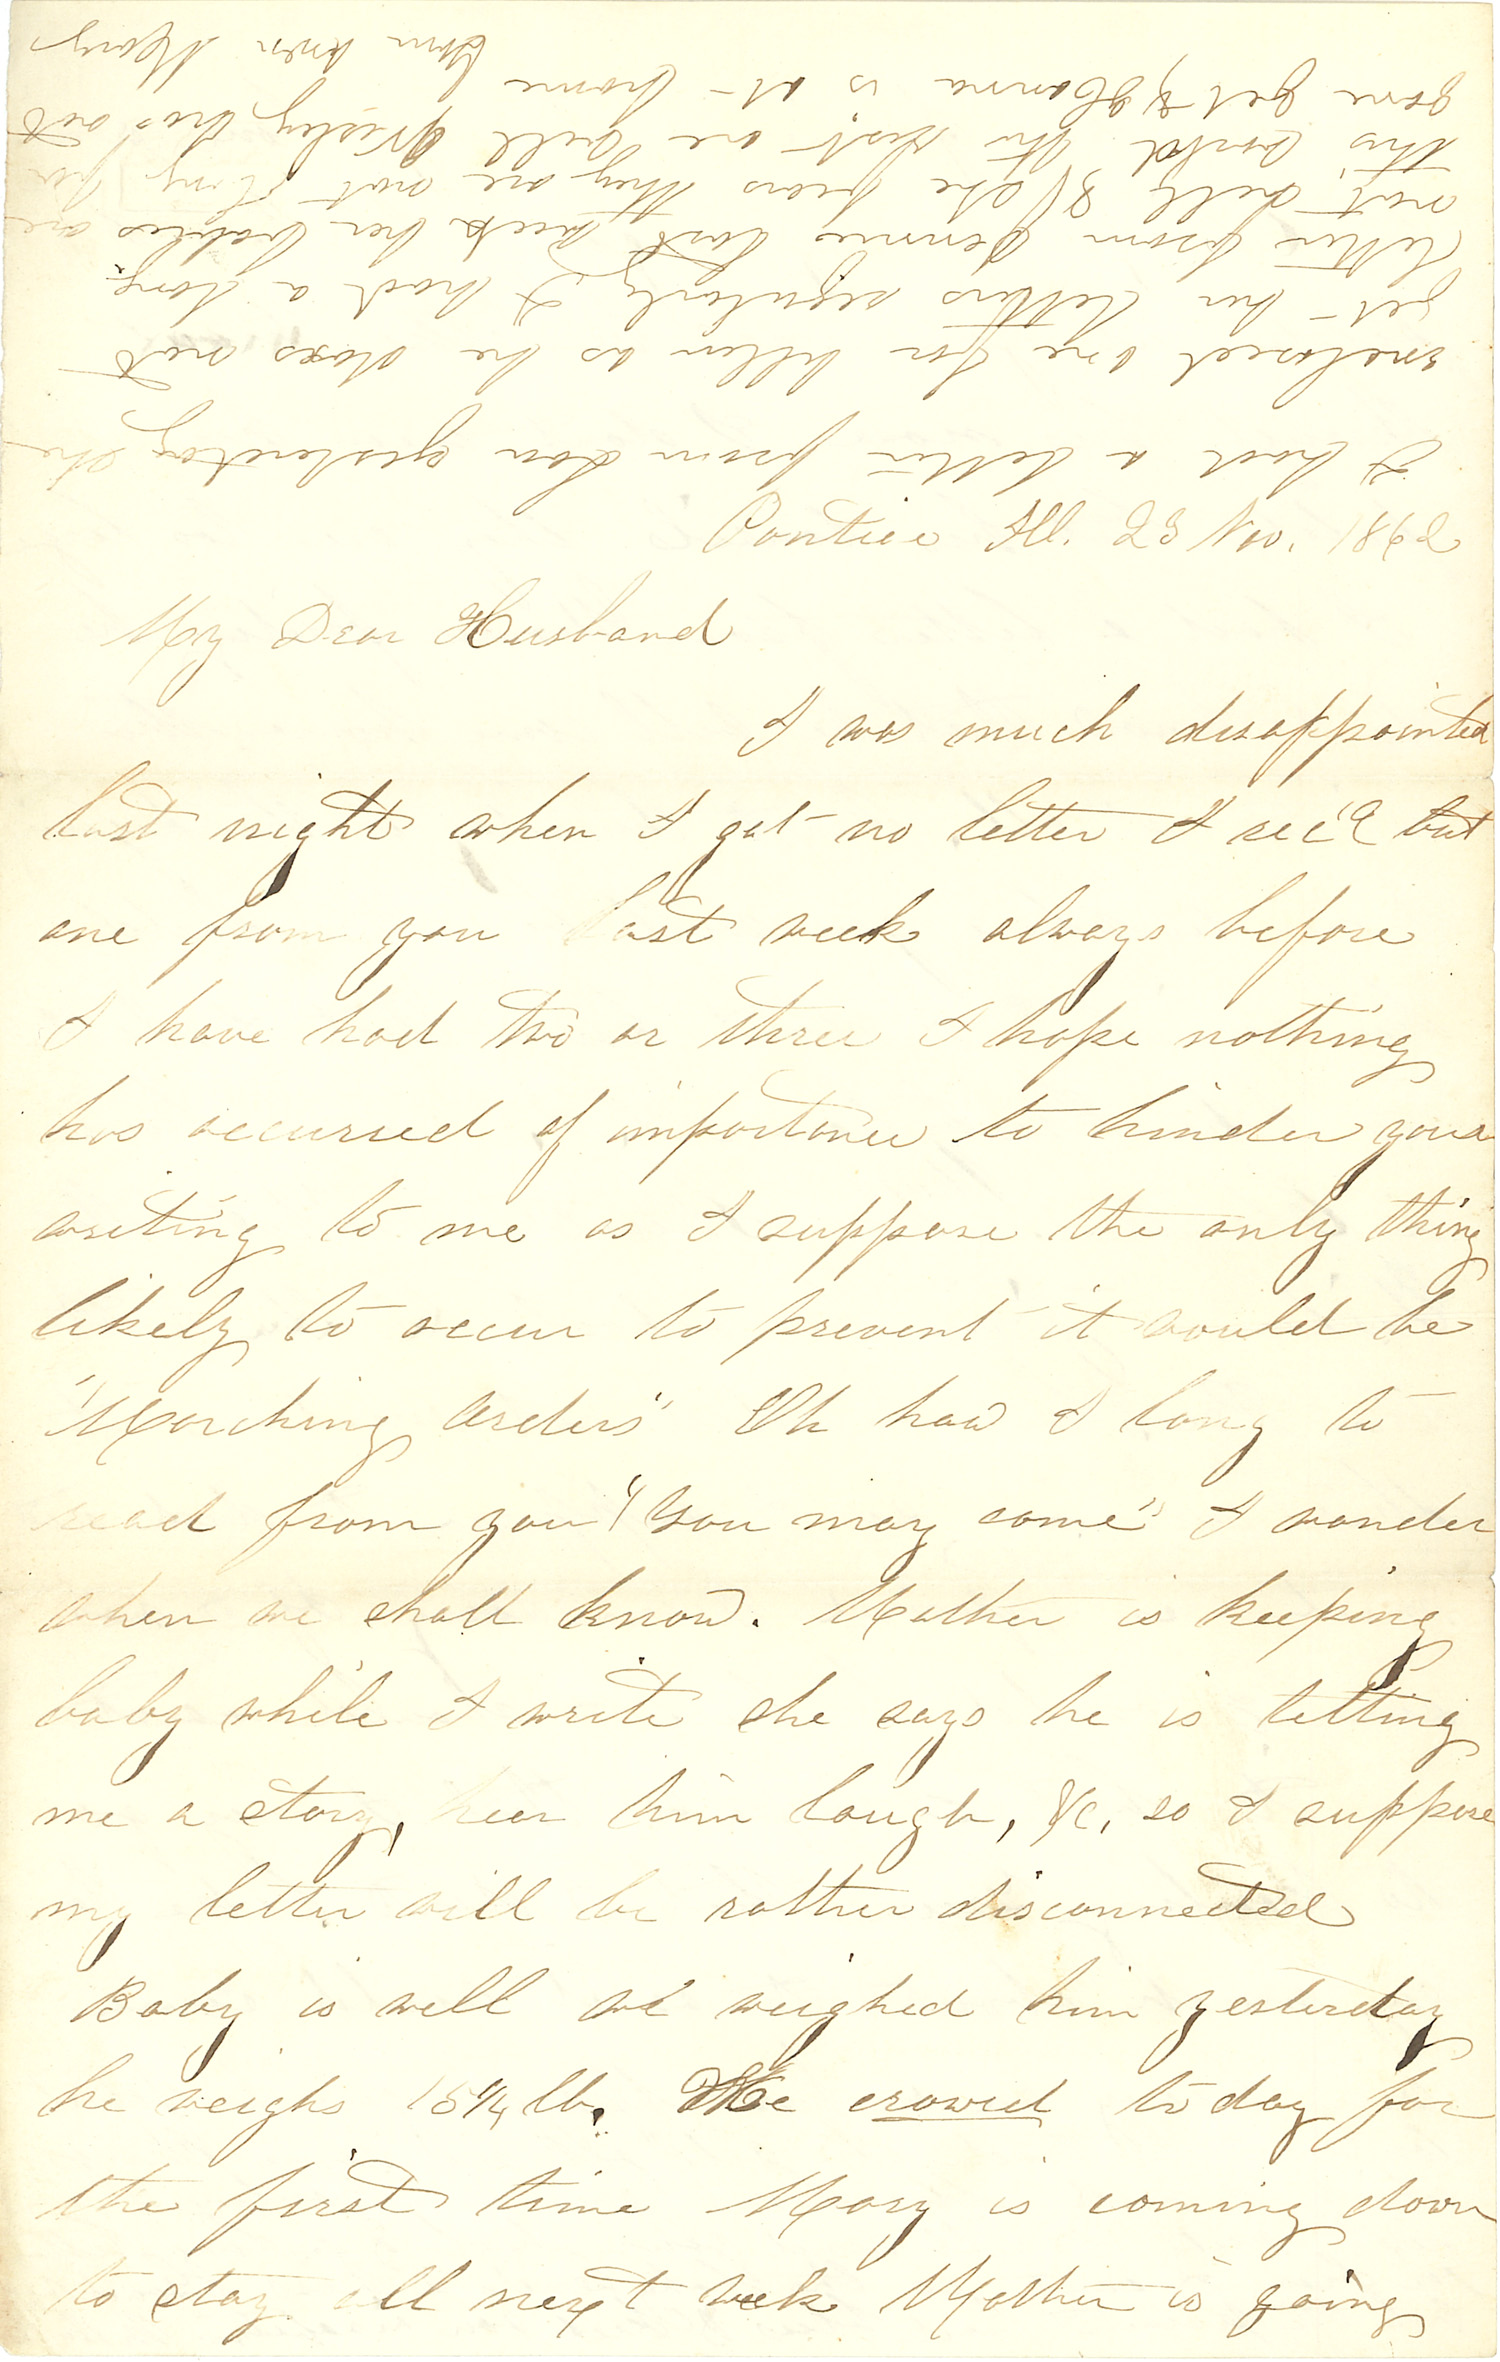 Joseph Culver Letter, November 23, 1862, Page 1